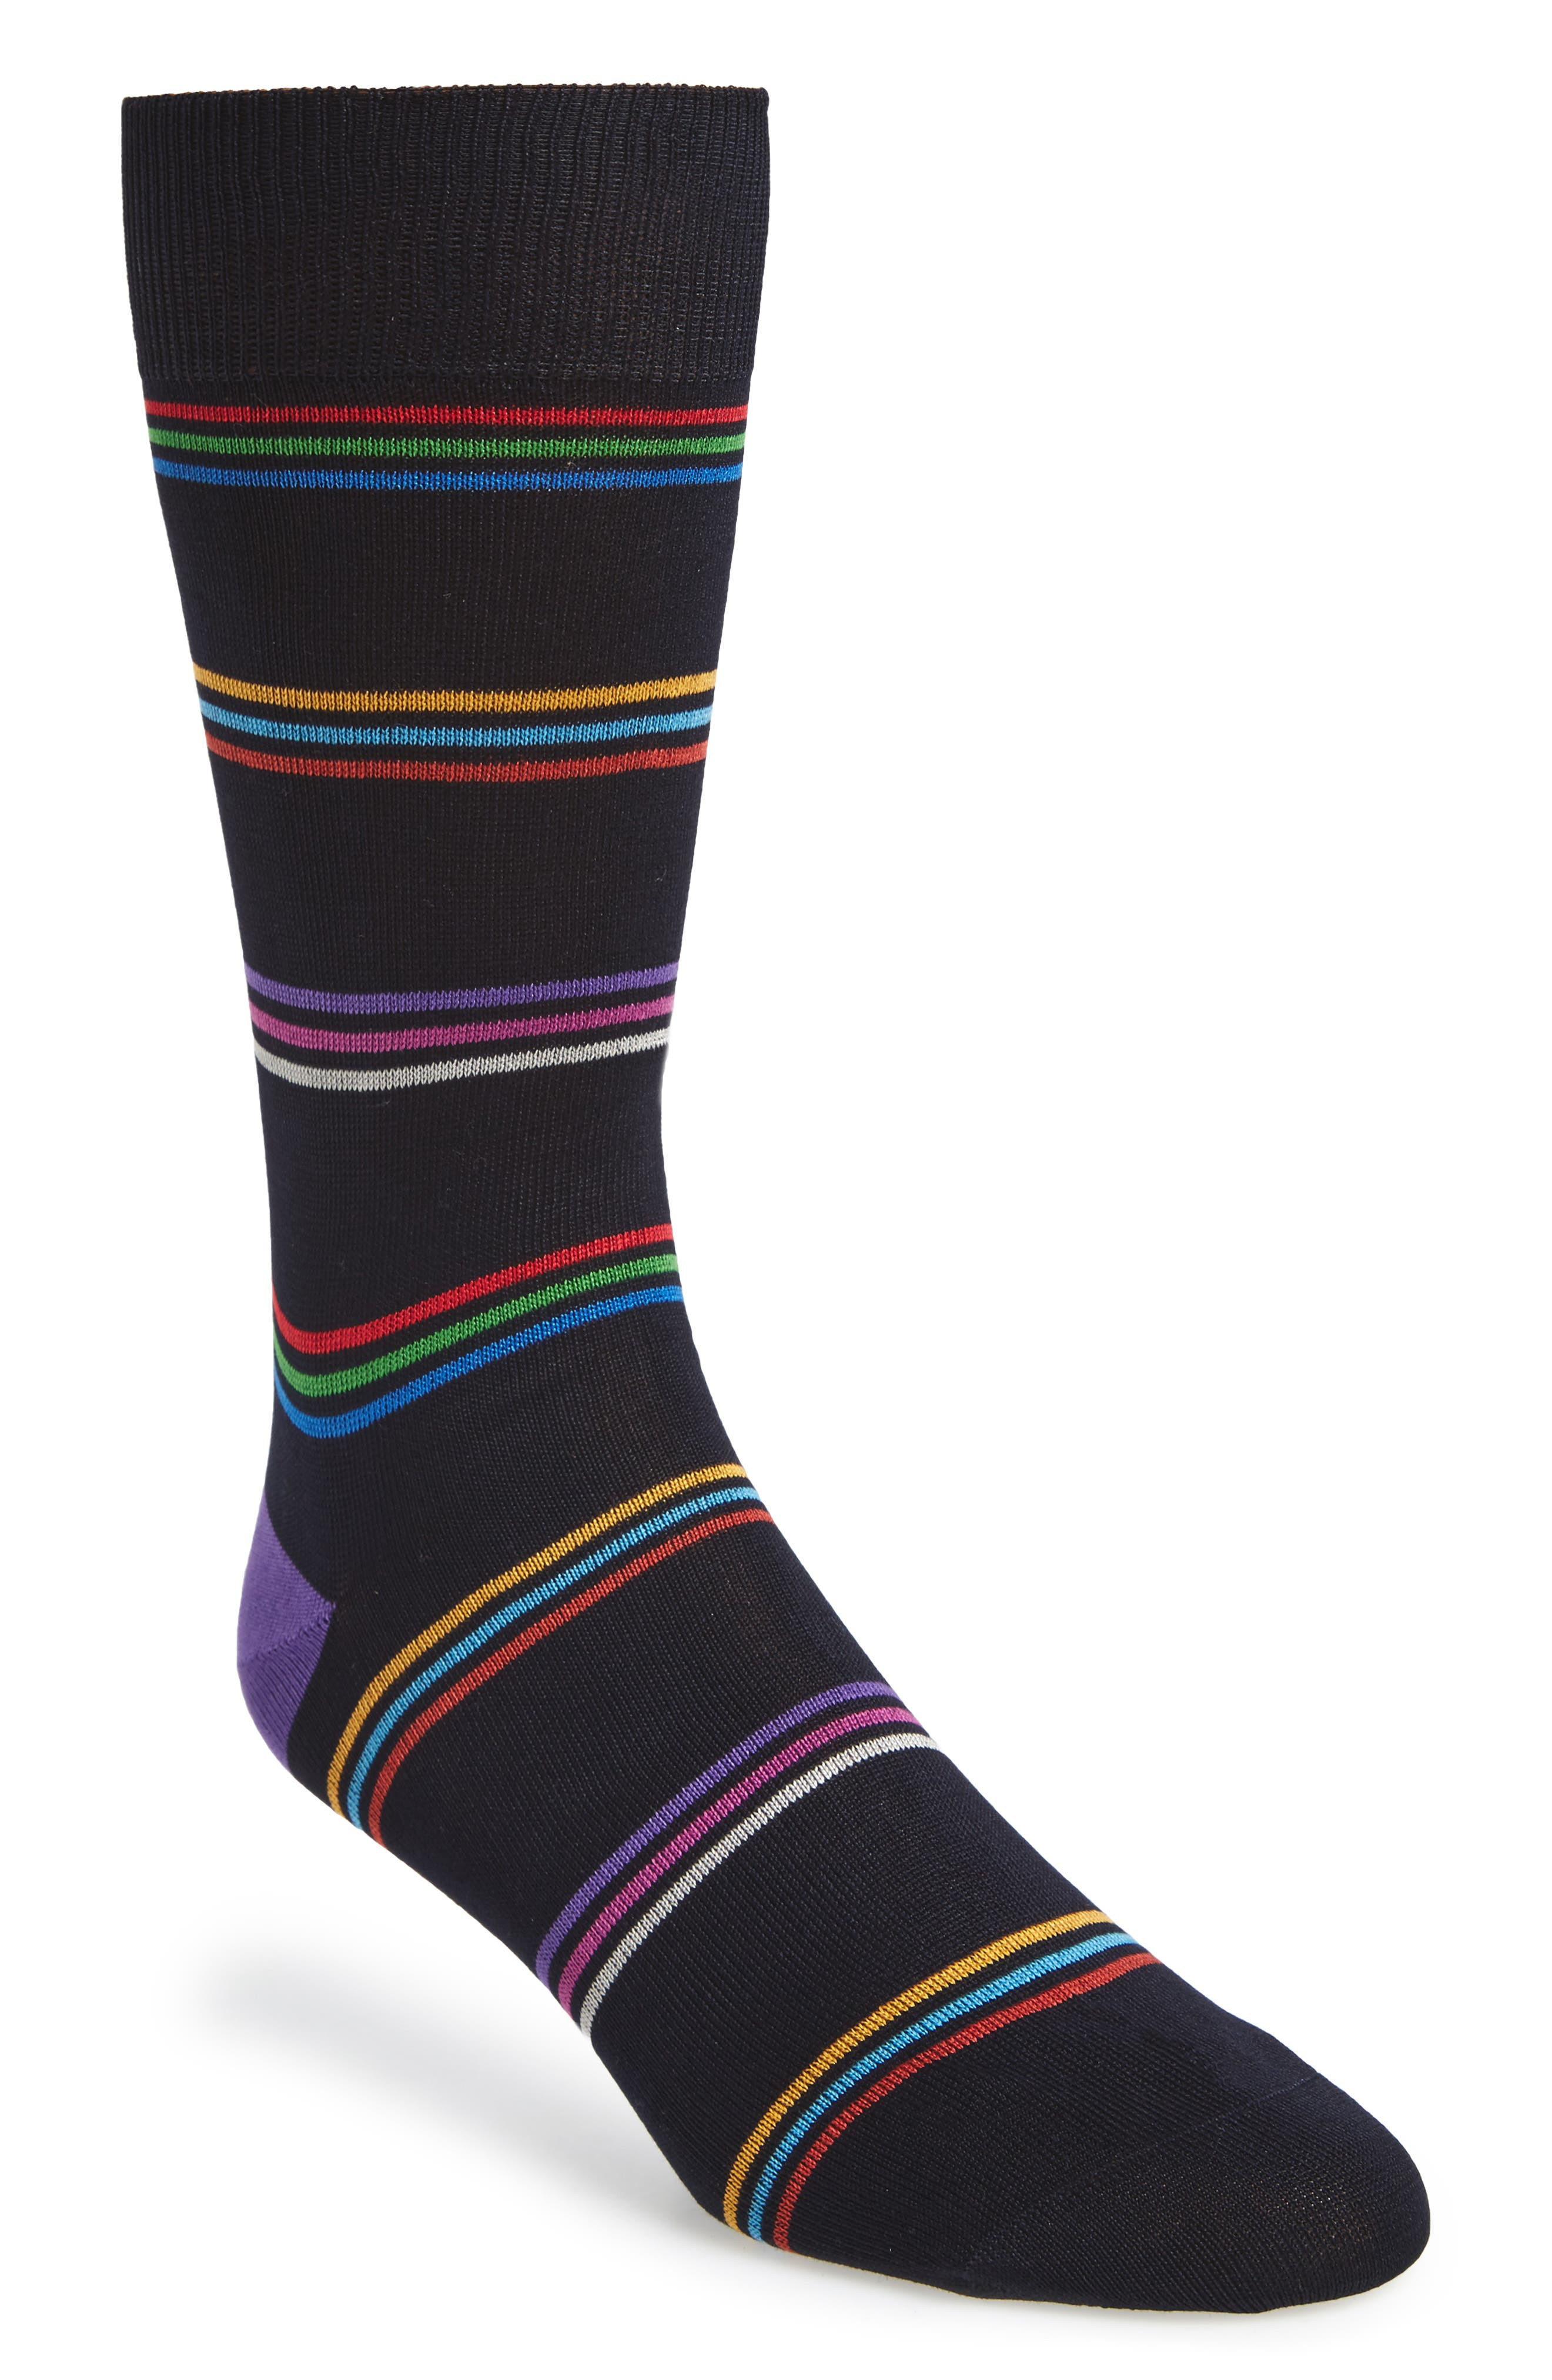 Paul Smith Blah Blah Blah Stripe Socks